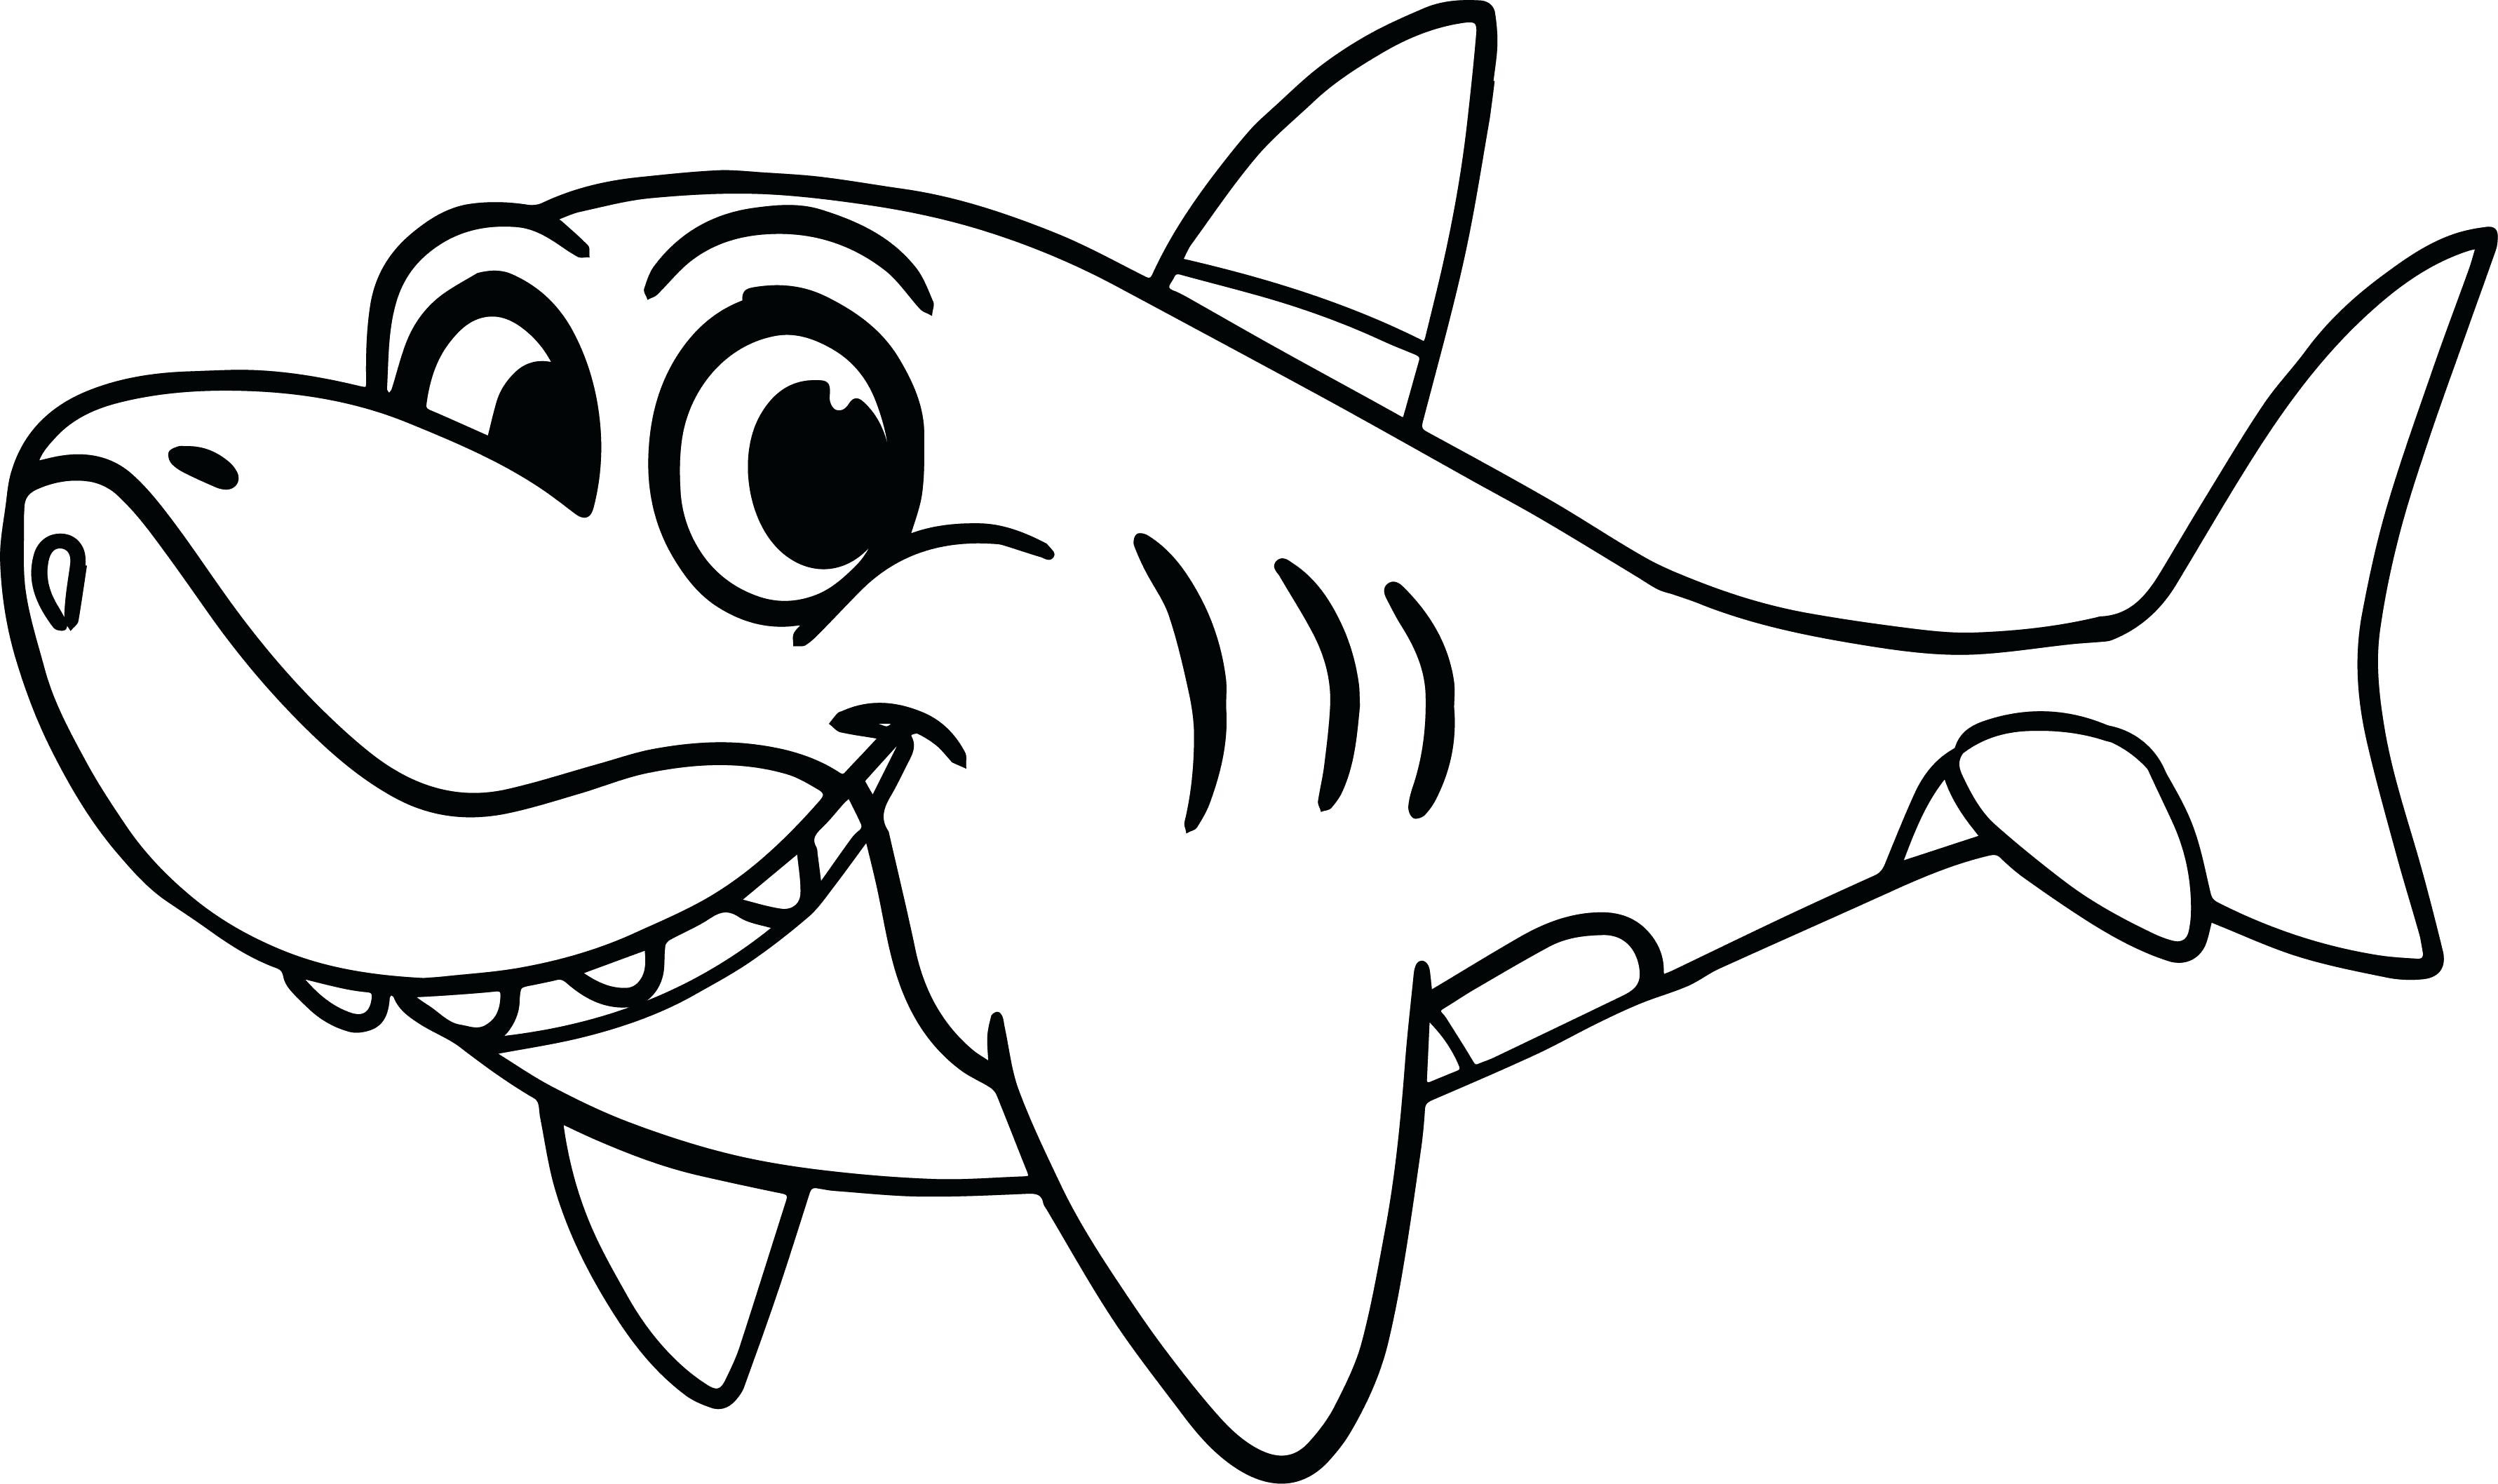 nemo crush coloring pages - photo#29